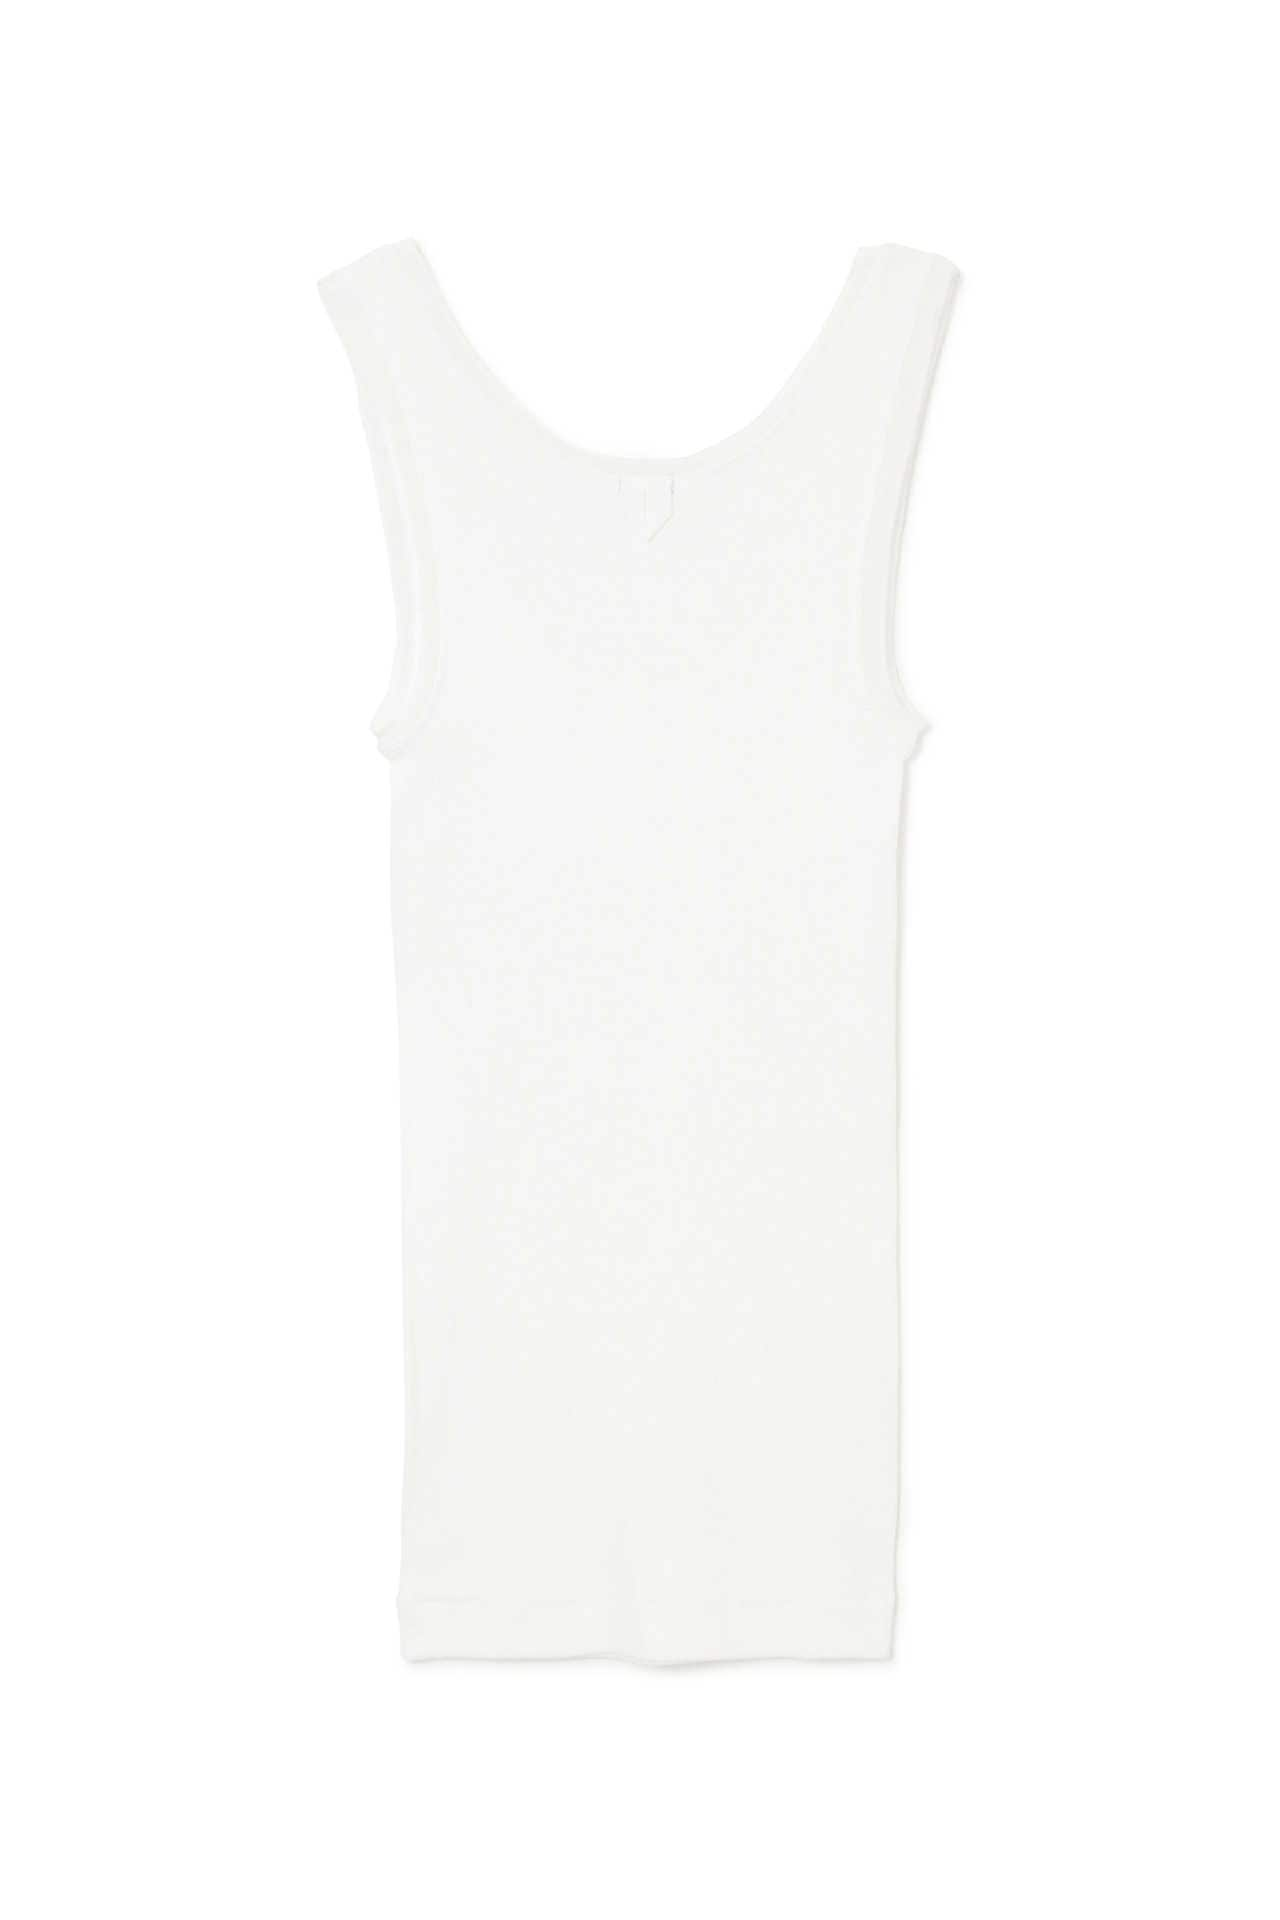 SUPIMA COTTON RIB TANK6